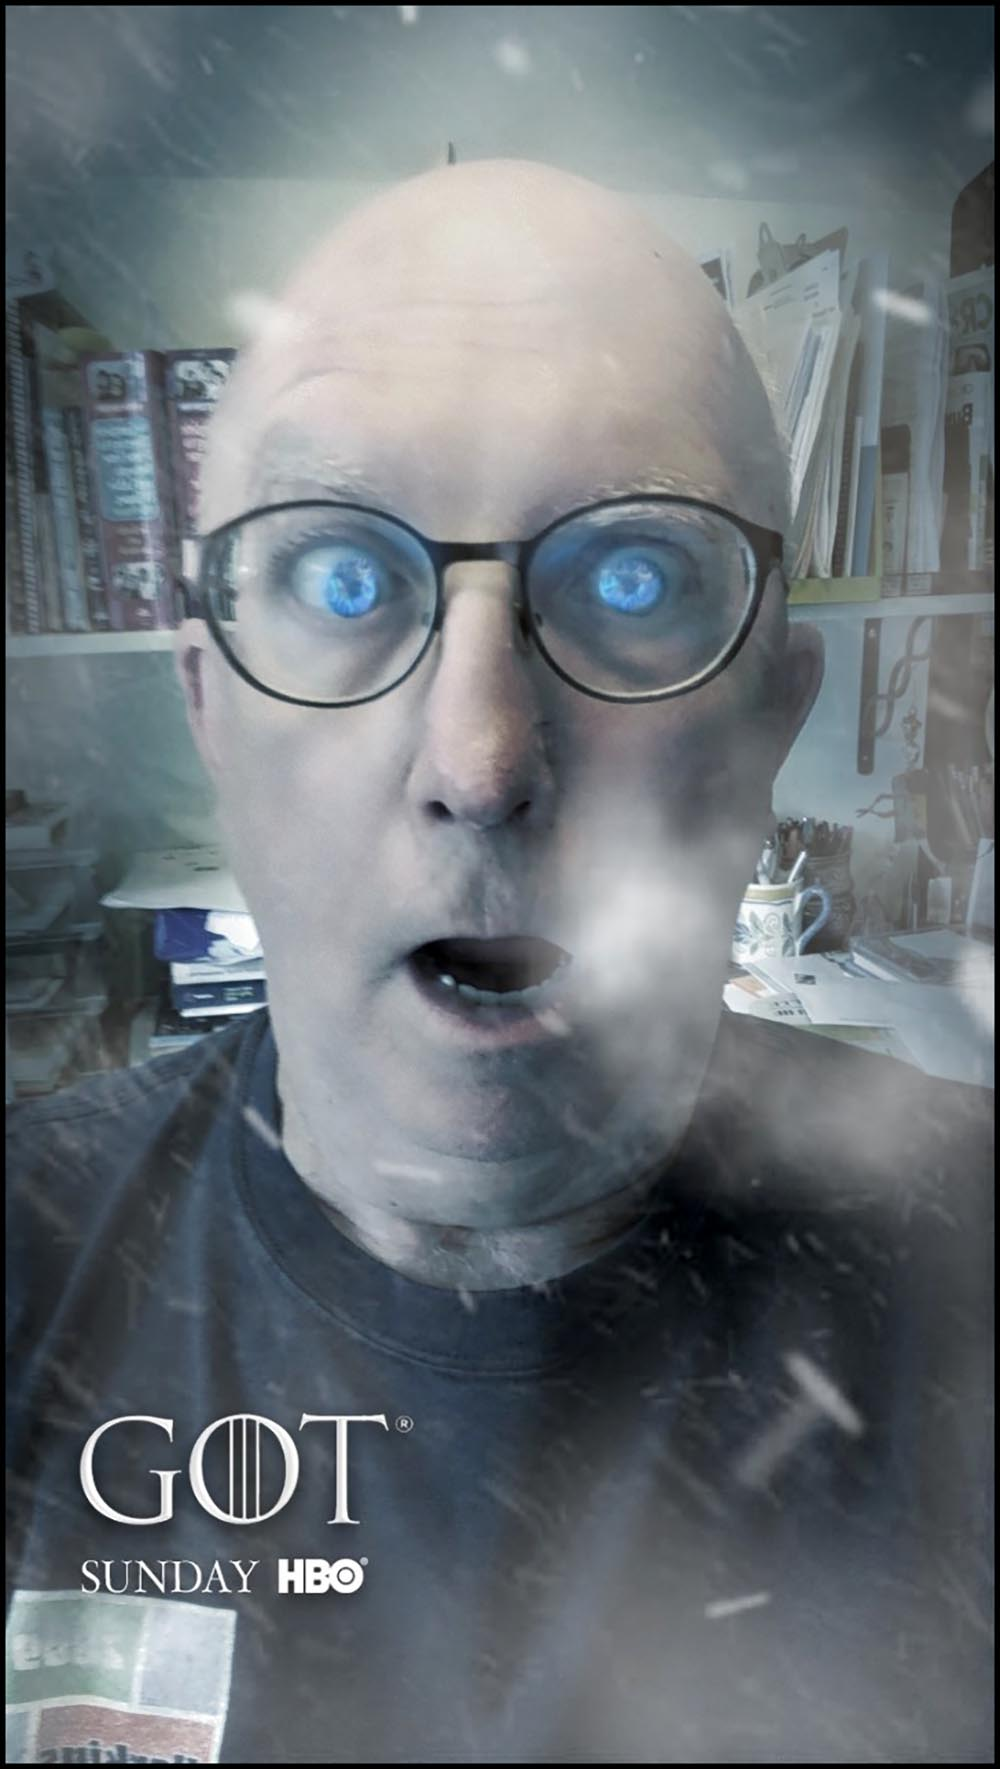 Figure 14.1 The author as seen through the Game of Thrones Snapchat lens. HBO invited fans to create White Walker versions of themselves in anticipation of the eighth season premiere.